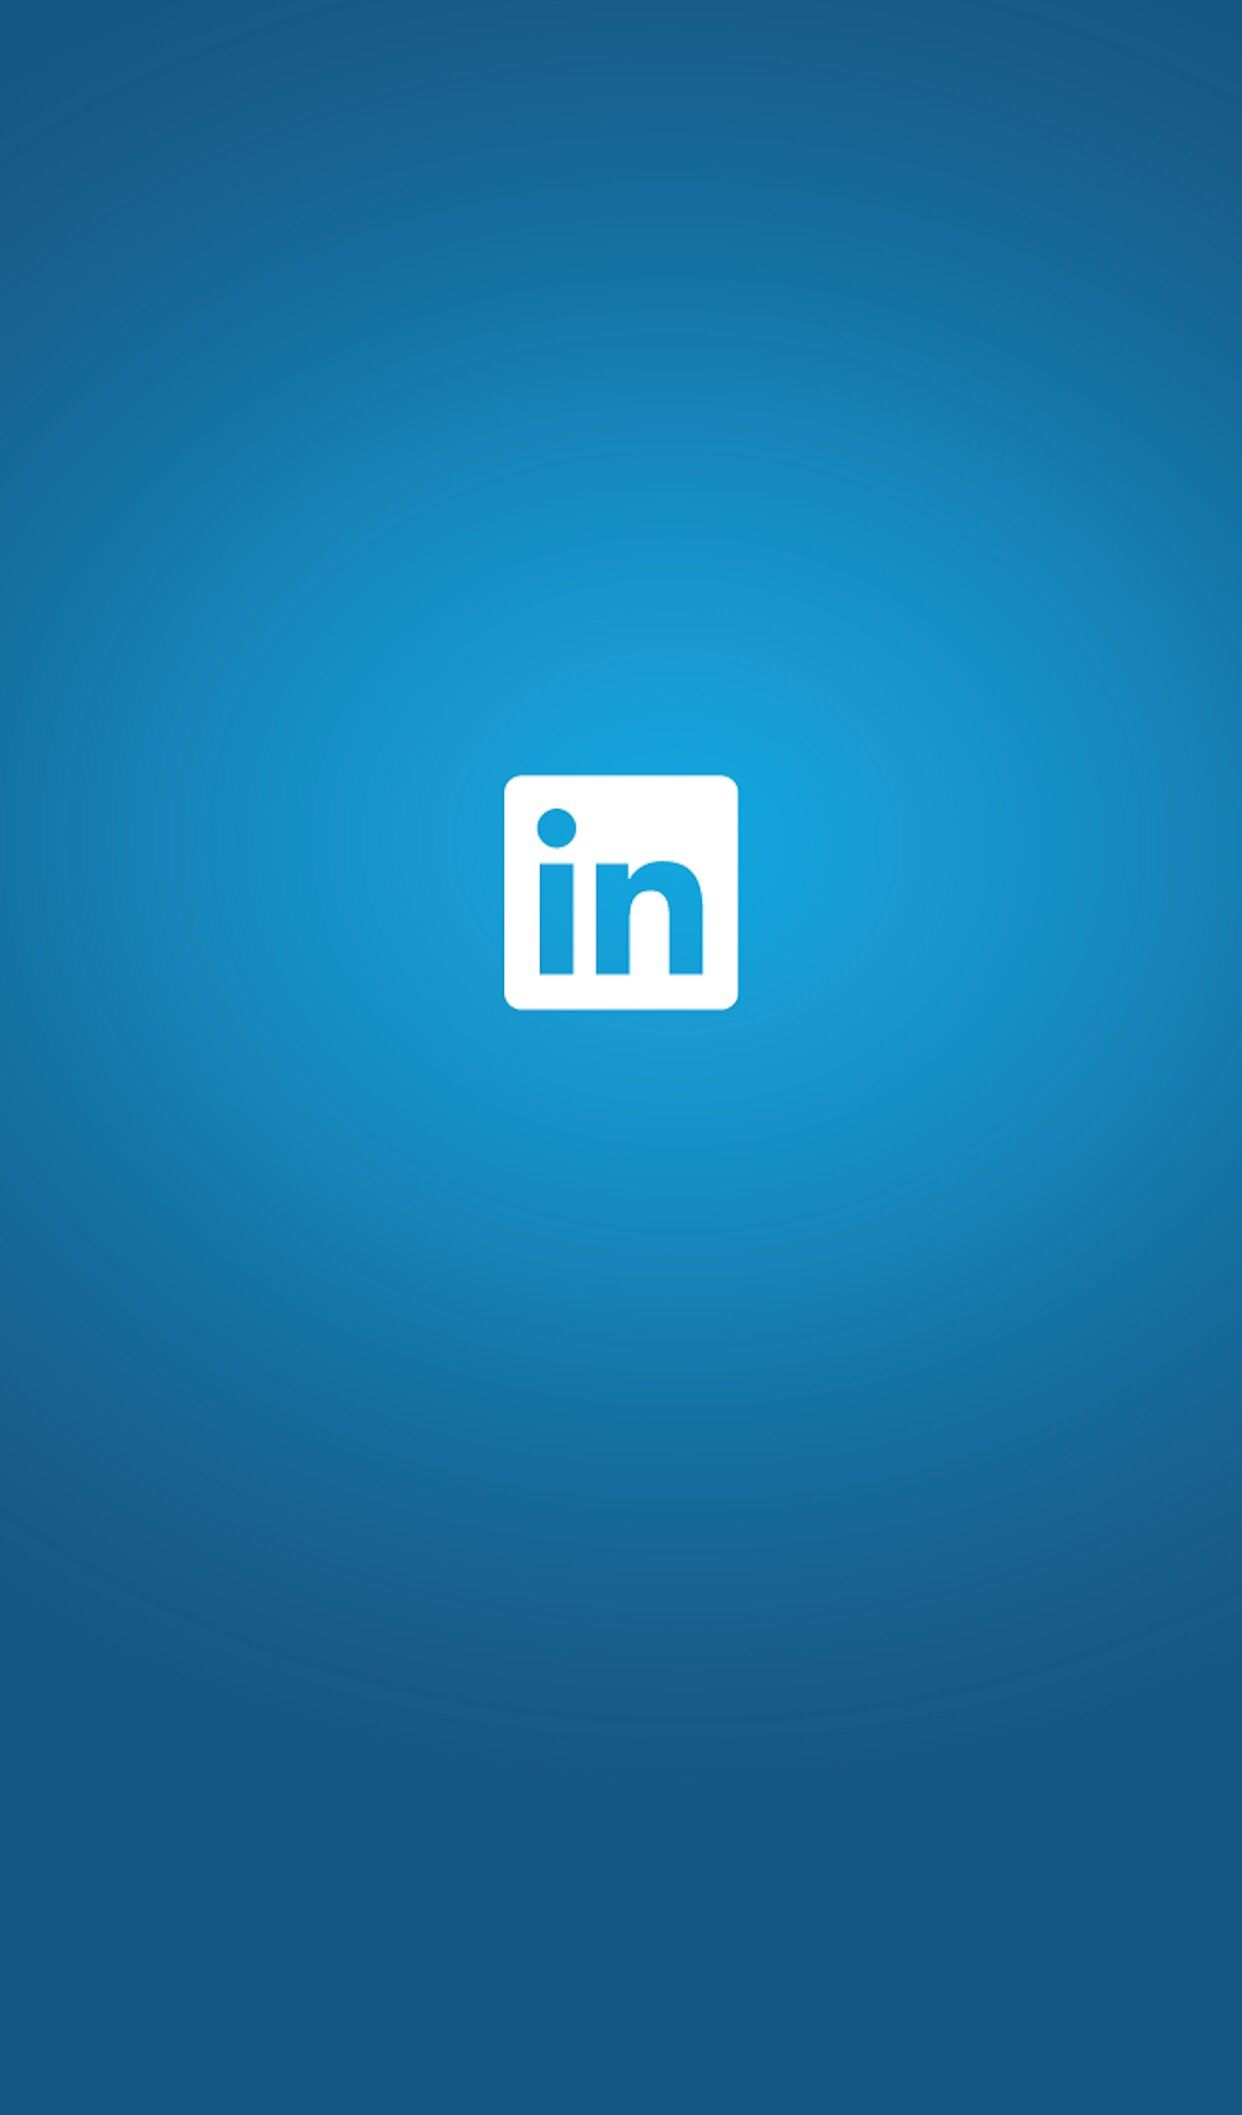 Getting to know the new linkedin job search superhero